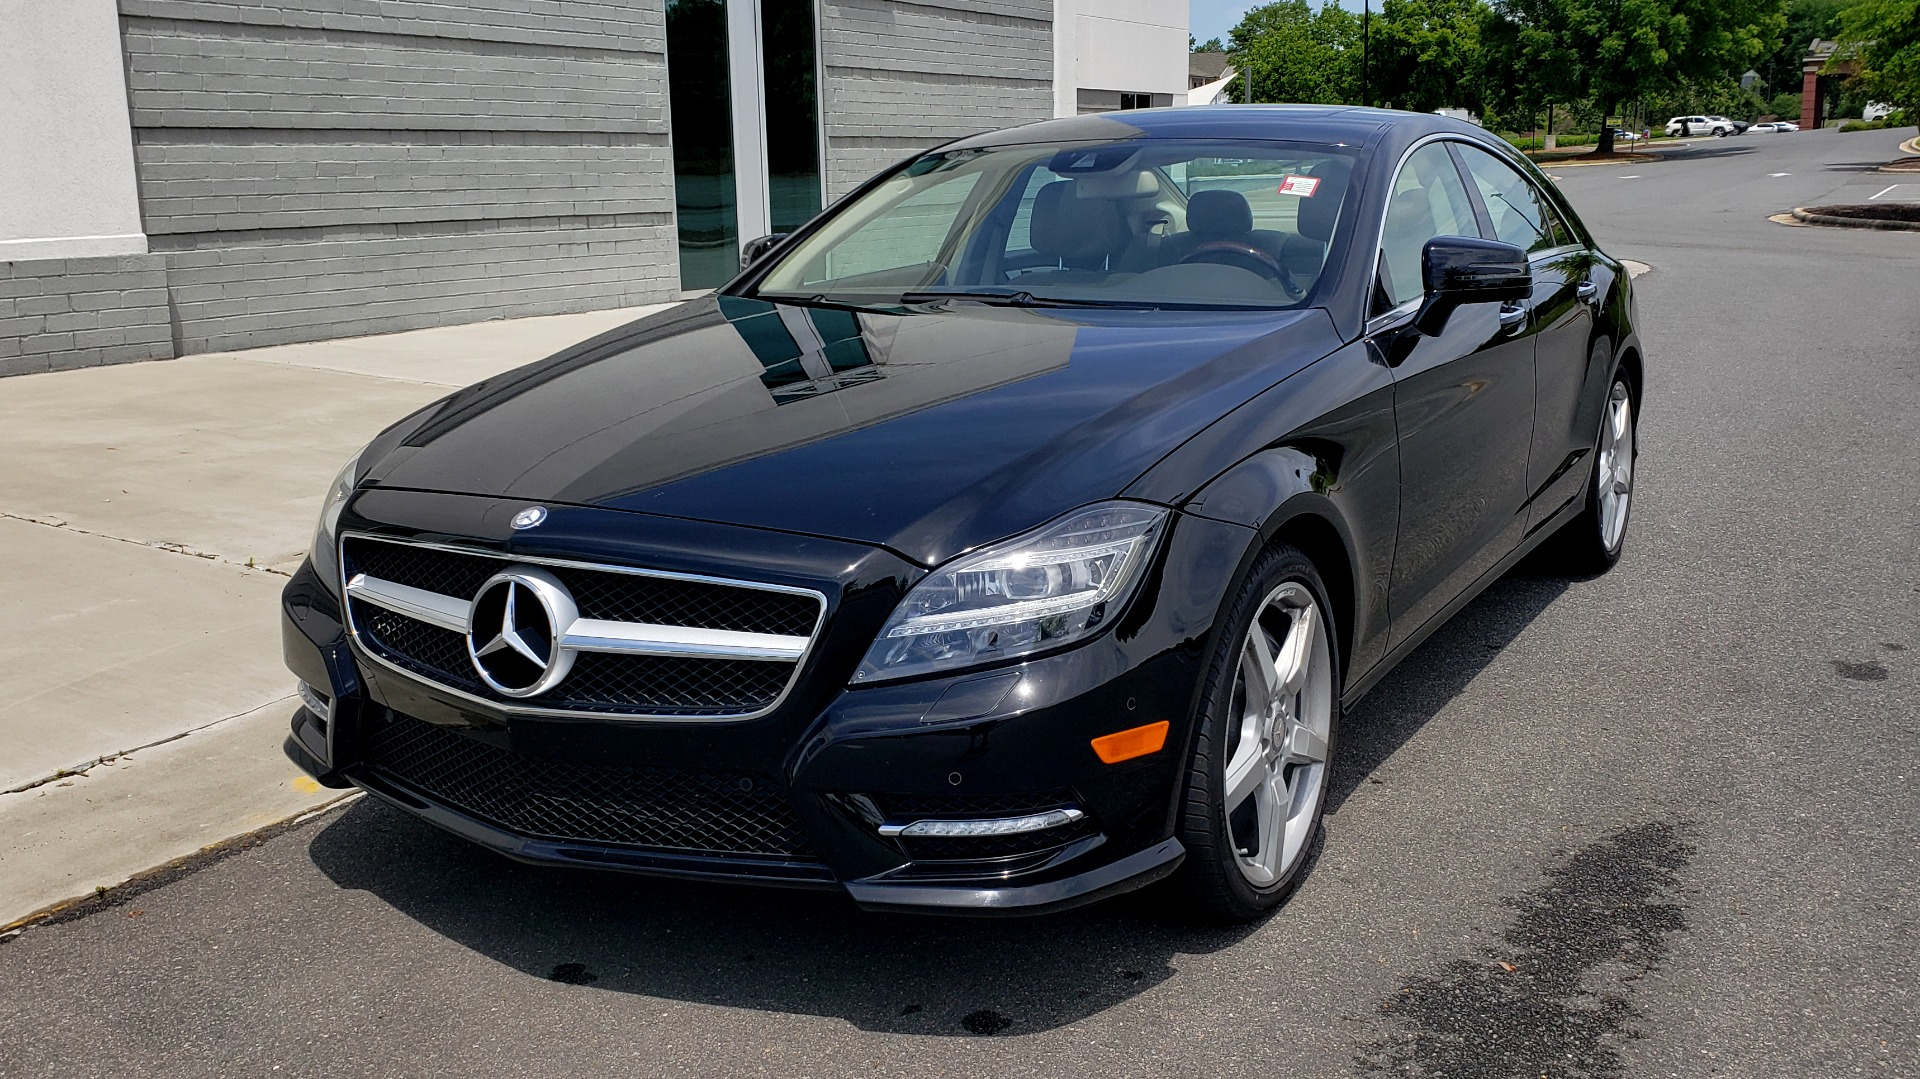 Used 2014 Mercedes-Benz CLS-CLASS CLS 550 PREMIUM / AMG SPORT WHLS / SUNROOF / LANE TRACK / PARKTRONIC for sale Sold at Formula Imports in Charlotte NC 28227 3